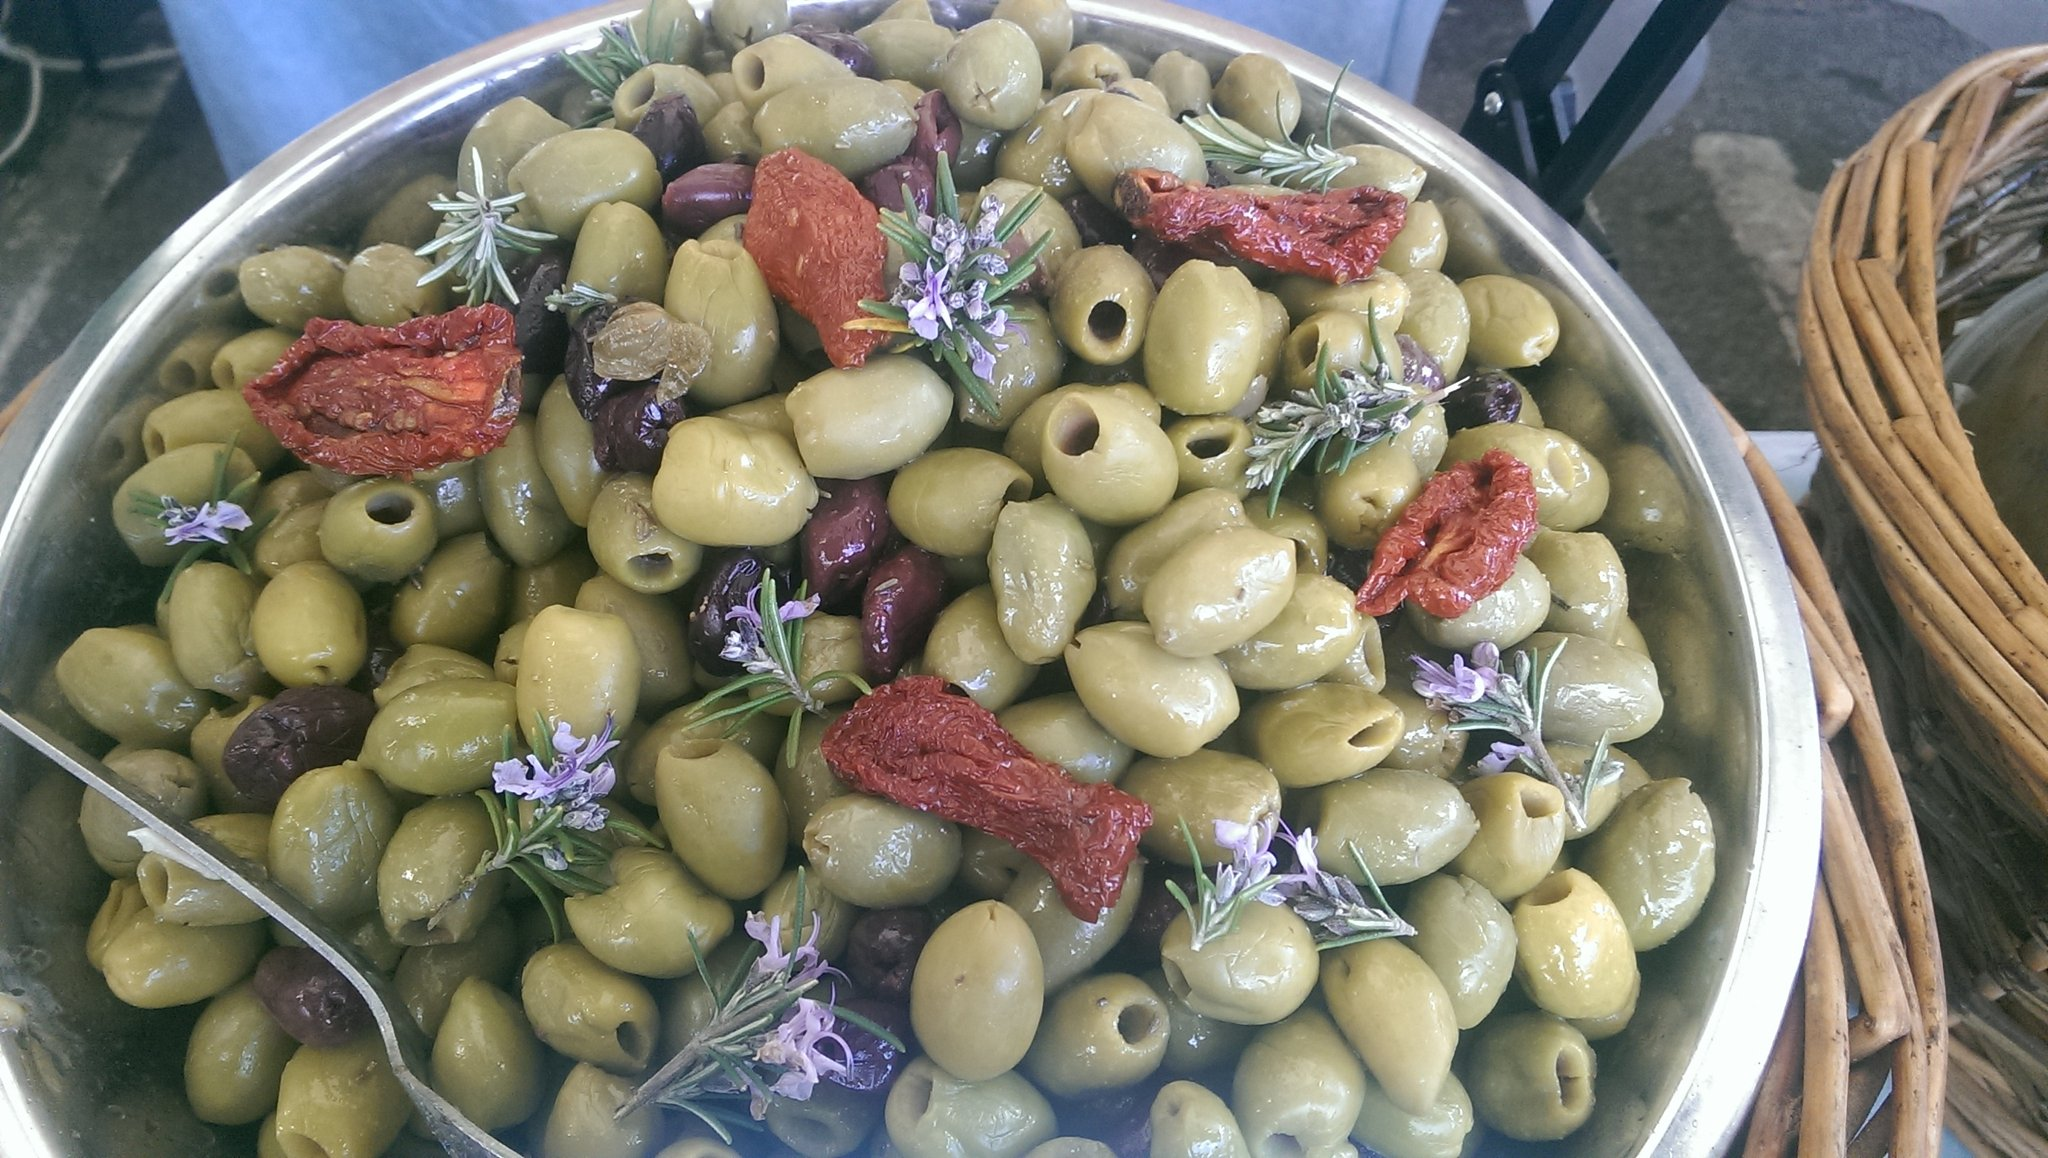 Image of Olives R Good 4 U Ltd